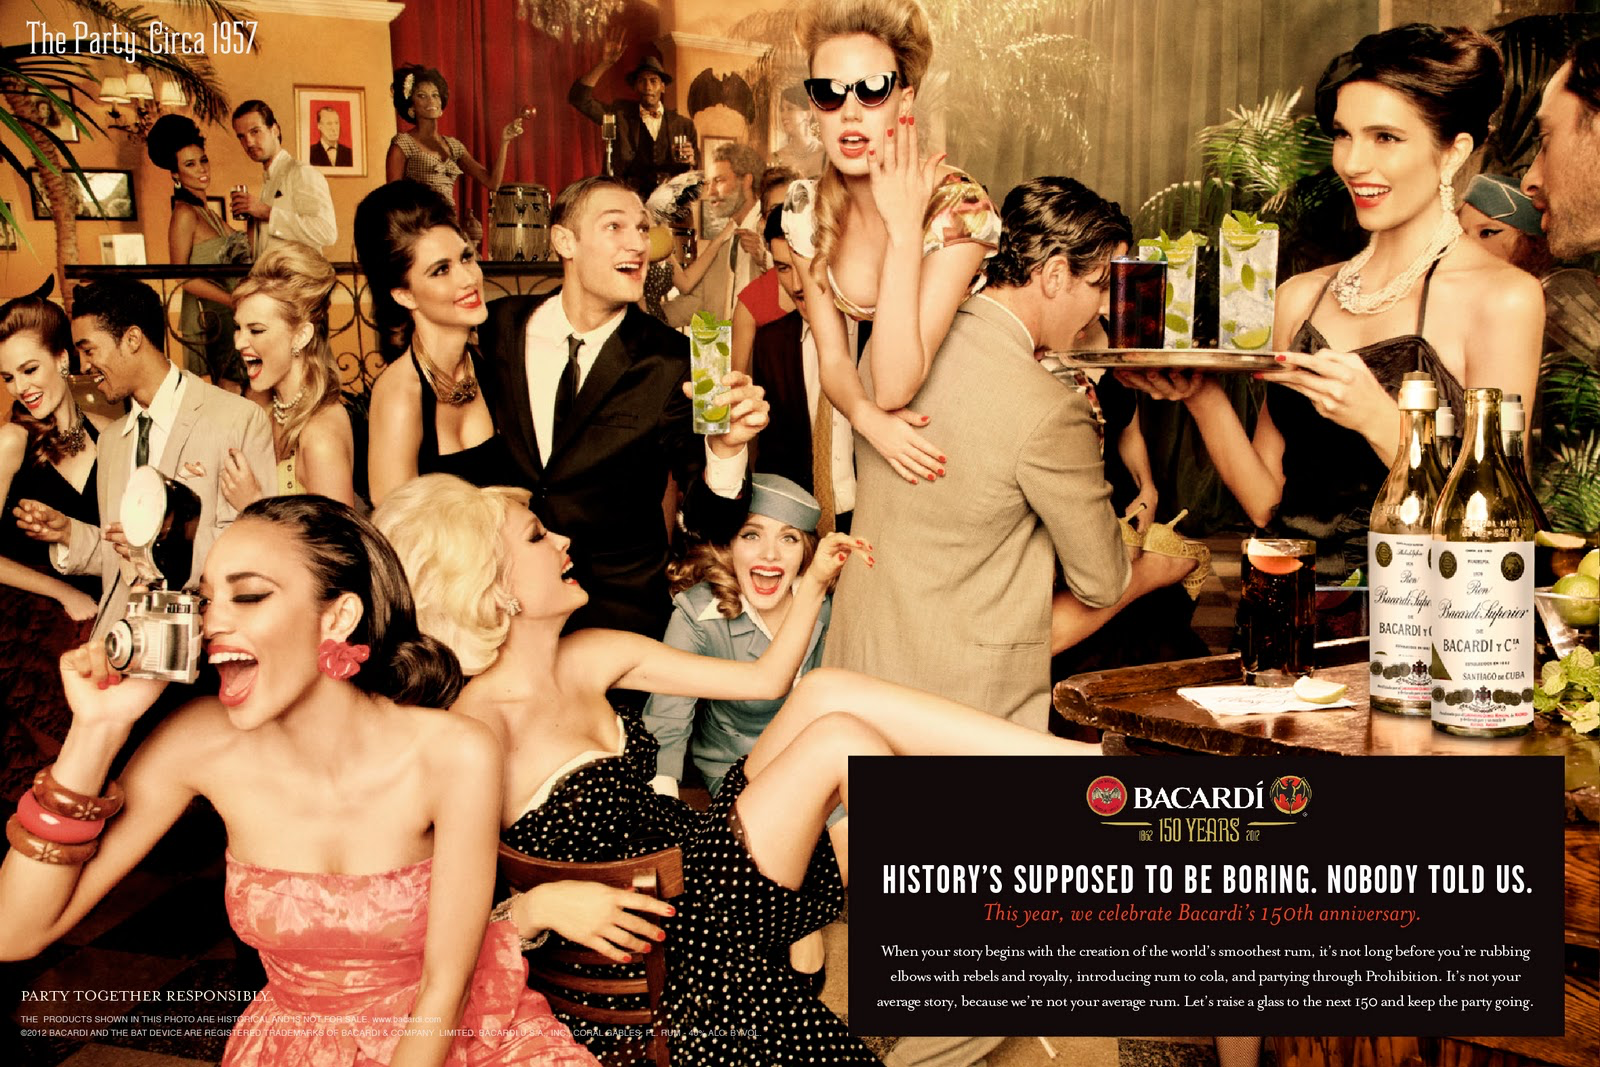 bacardi-the-party-circa-1957-ad.png